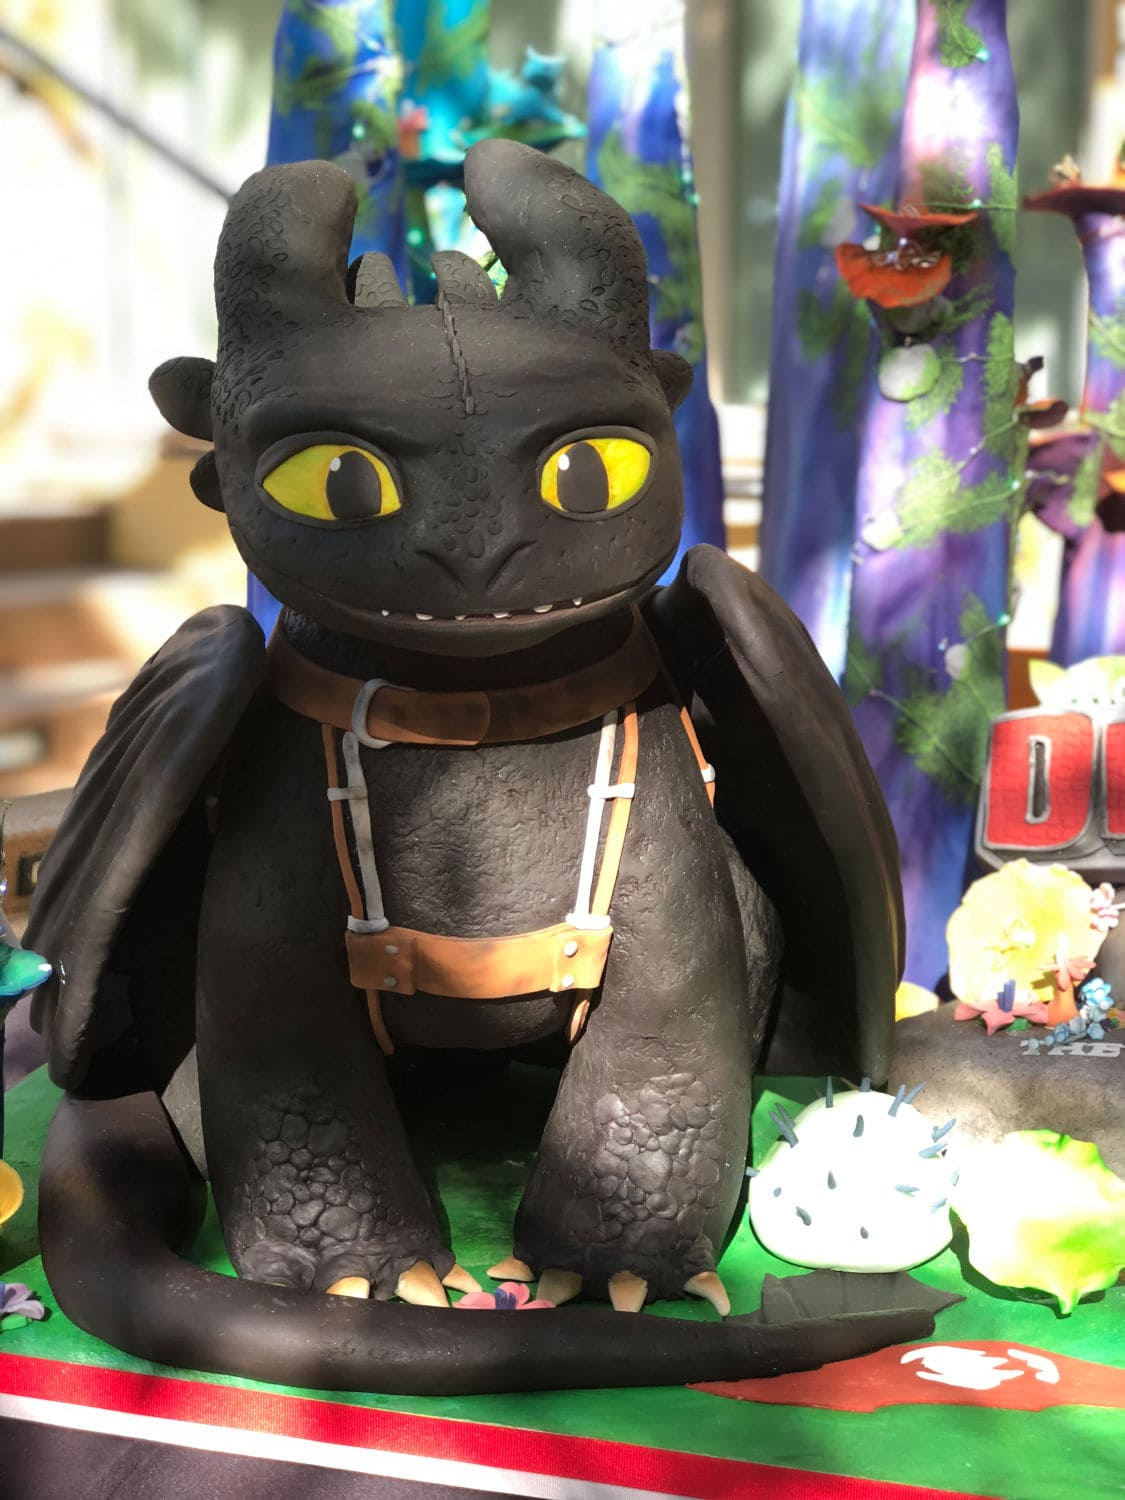 Toothless Cake by Duff Goldman